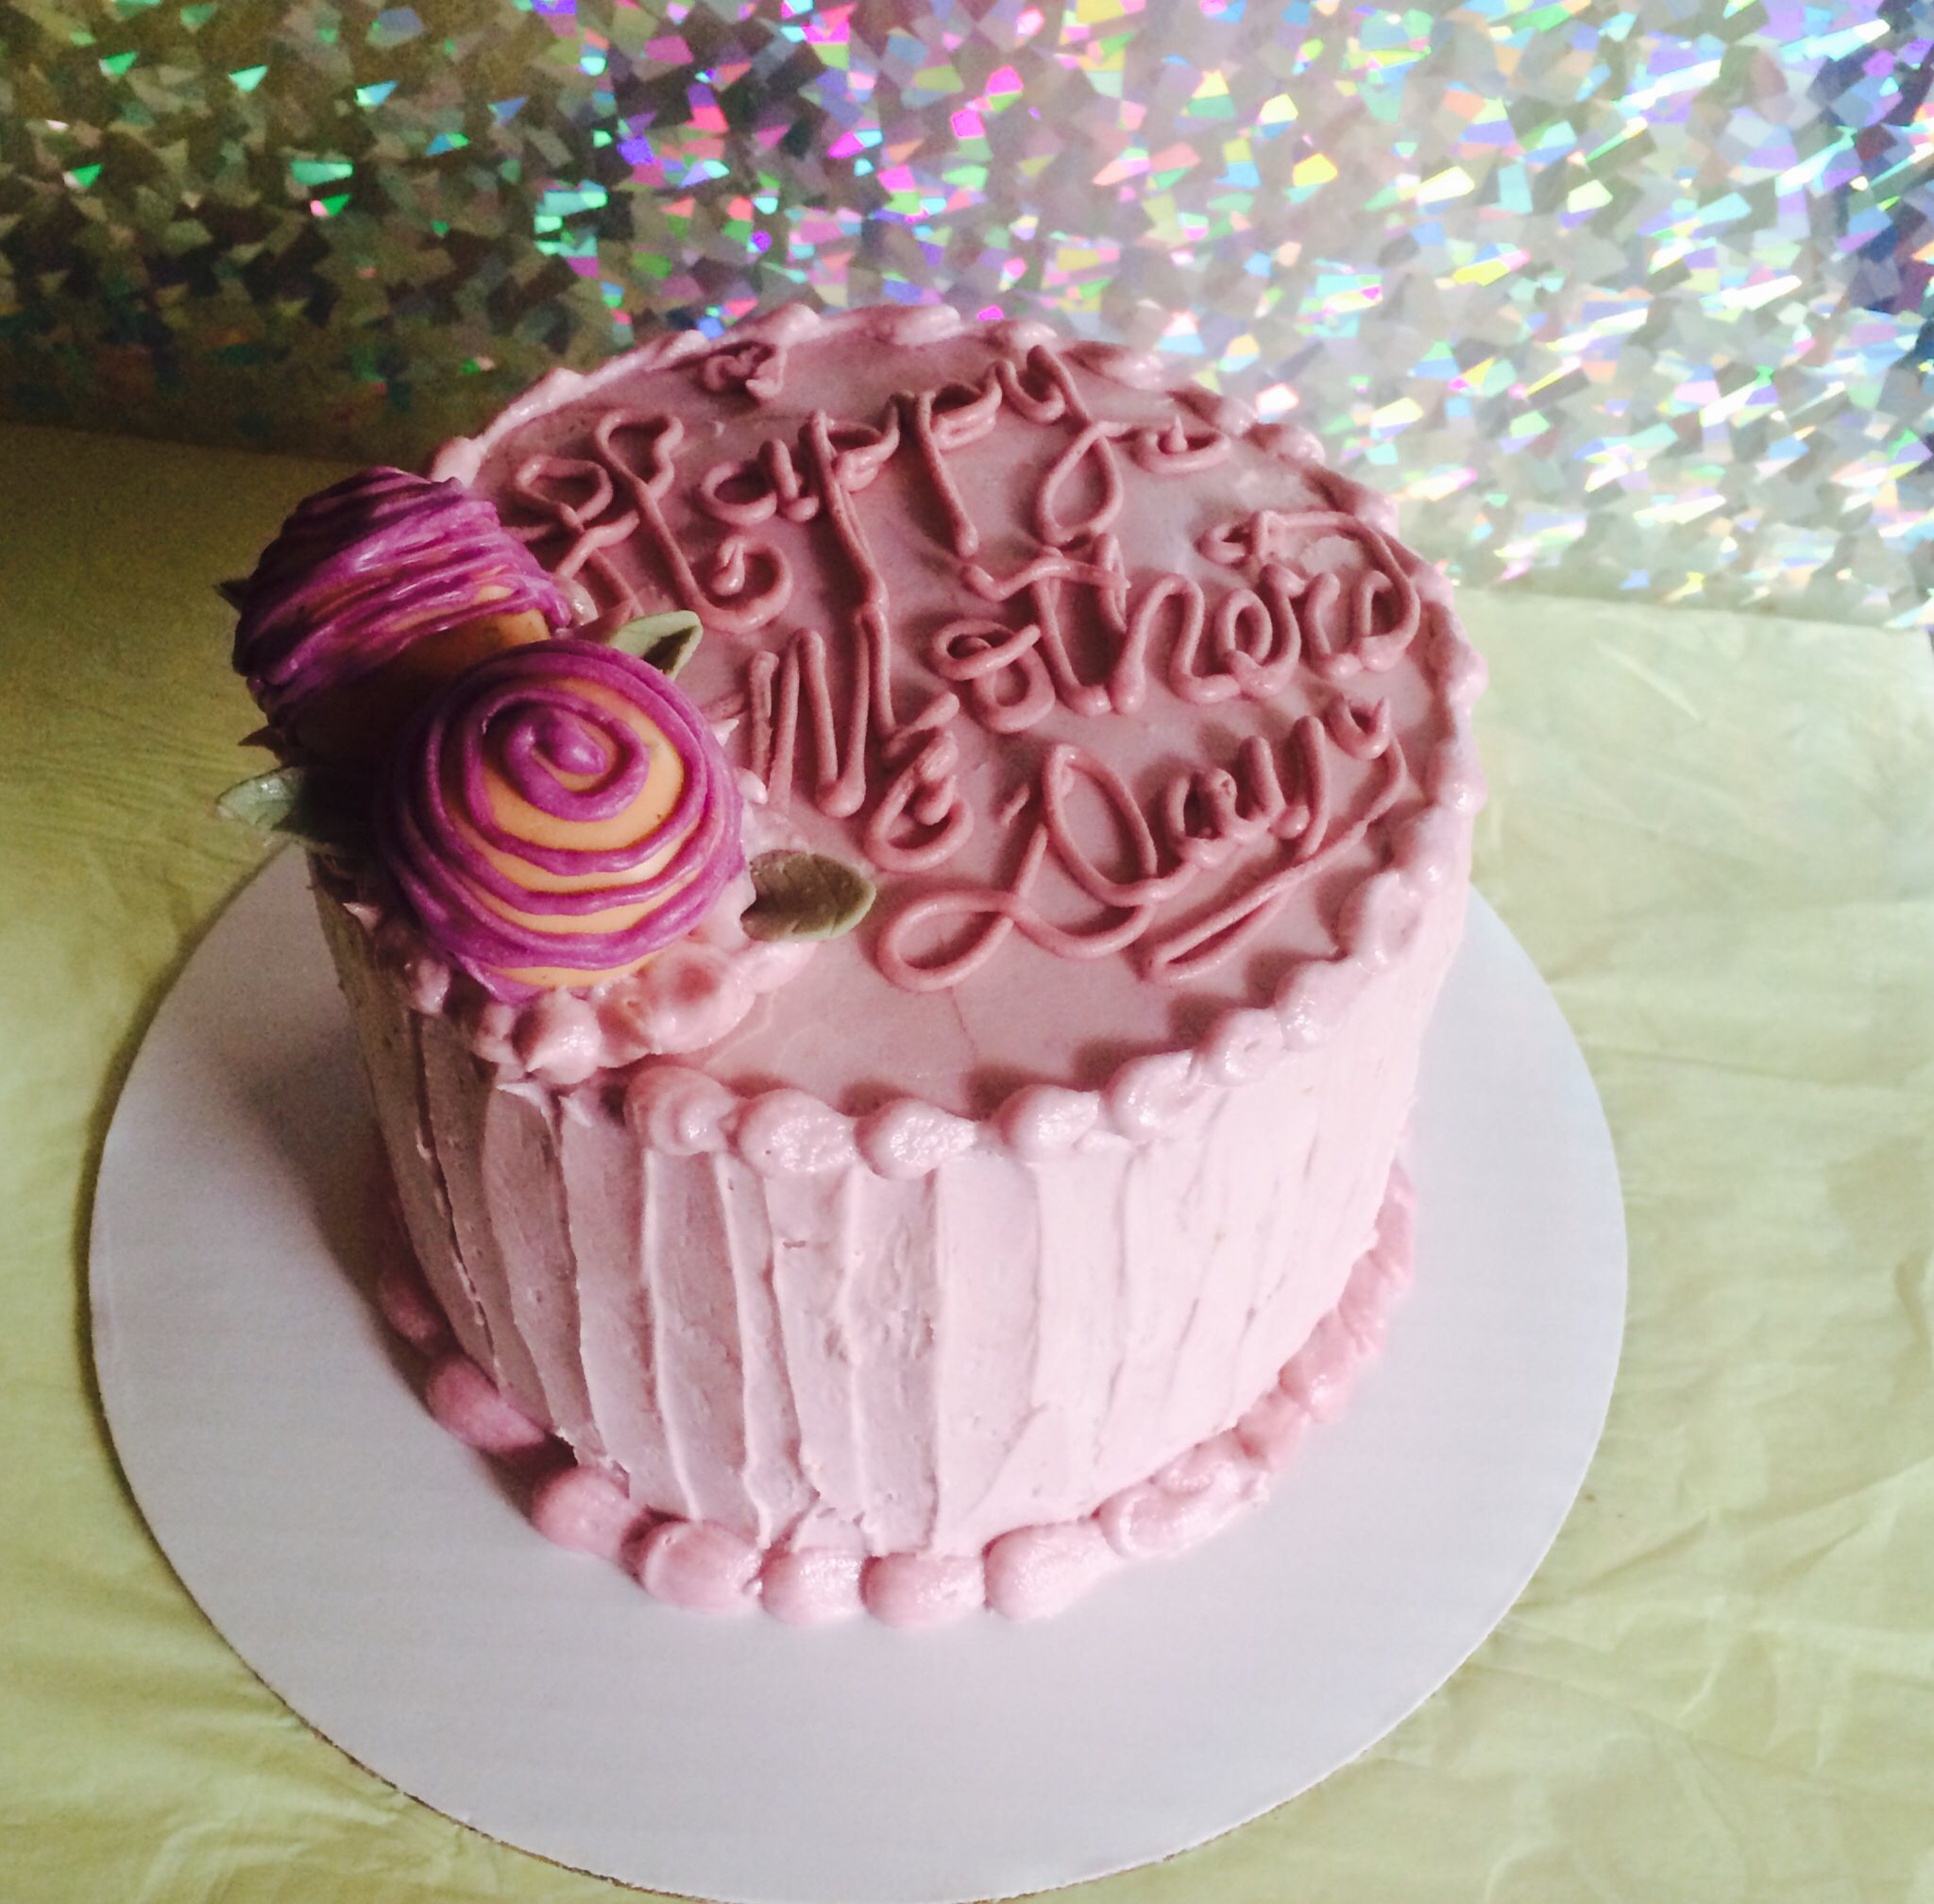 Pin By Azalia Meeuws On From My Kitchen Cute Little Cakes Little Cake Cake